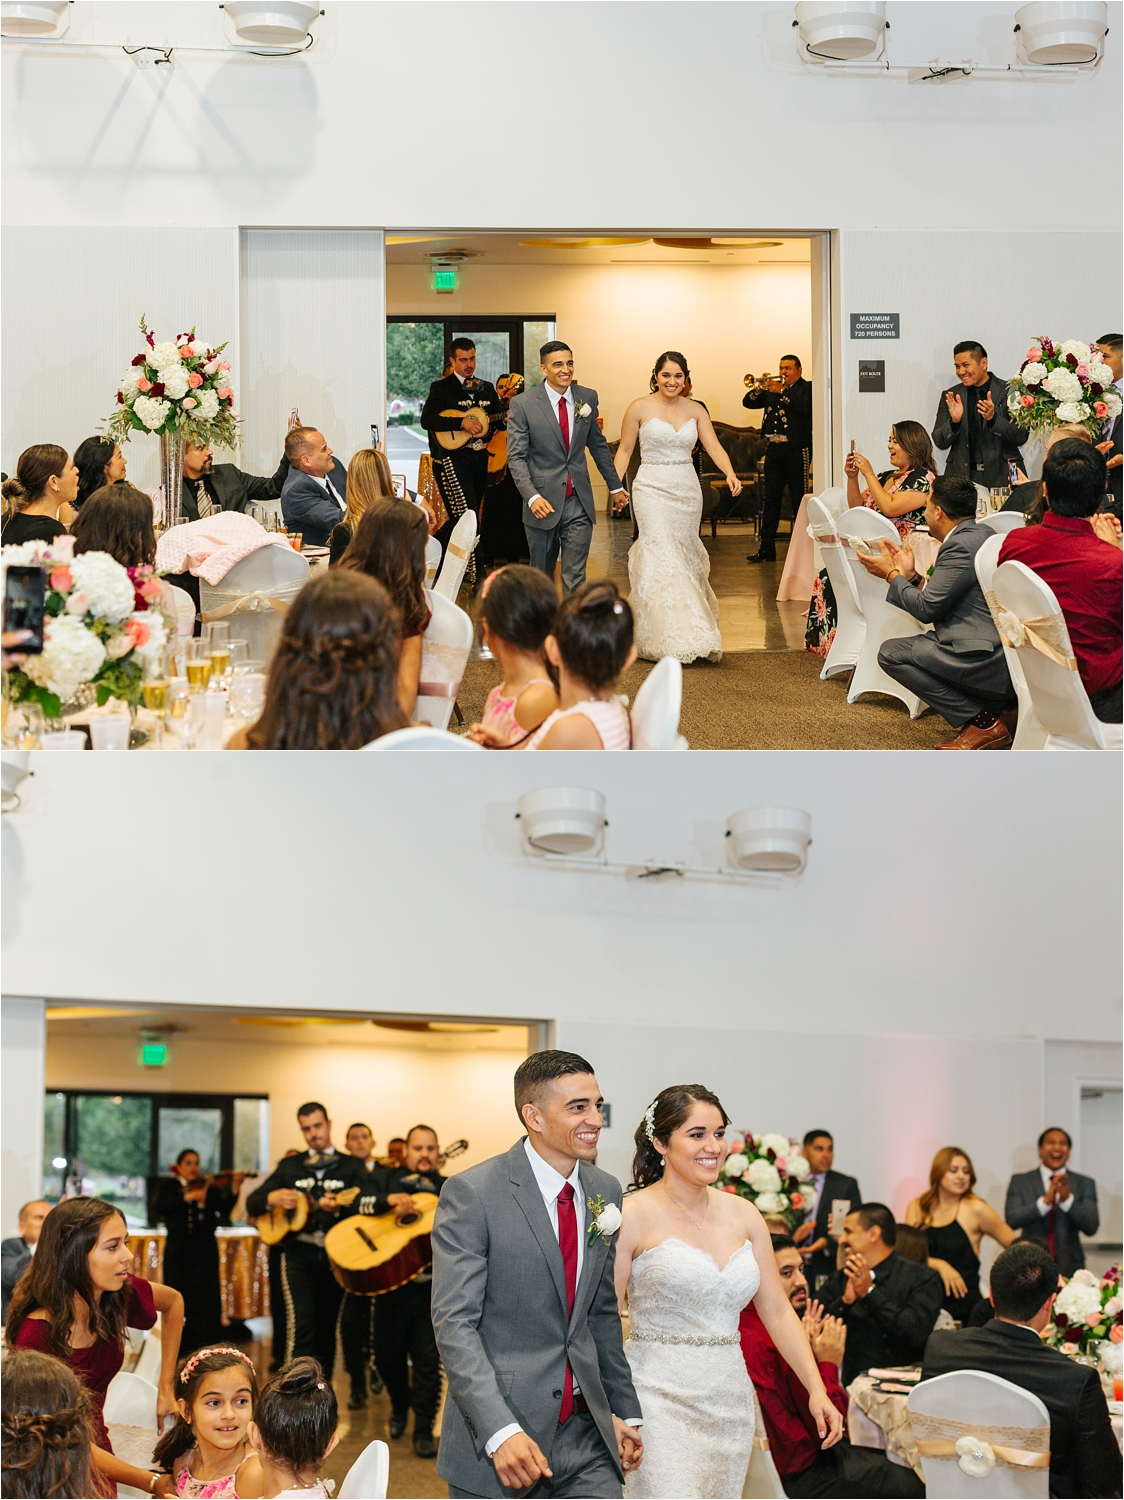 Chaffey College Wedding - Bride and Groom's Grand Entrance into Wedding Reception - https://brittneyhannonphotography.com